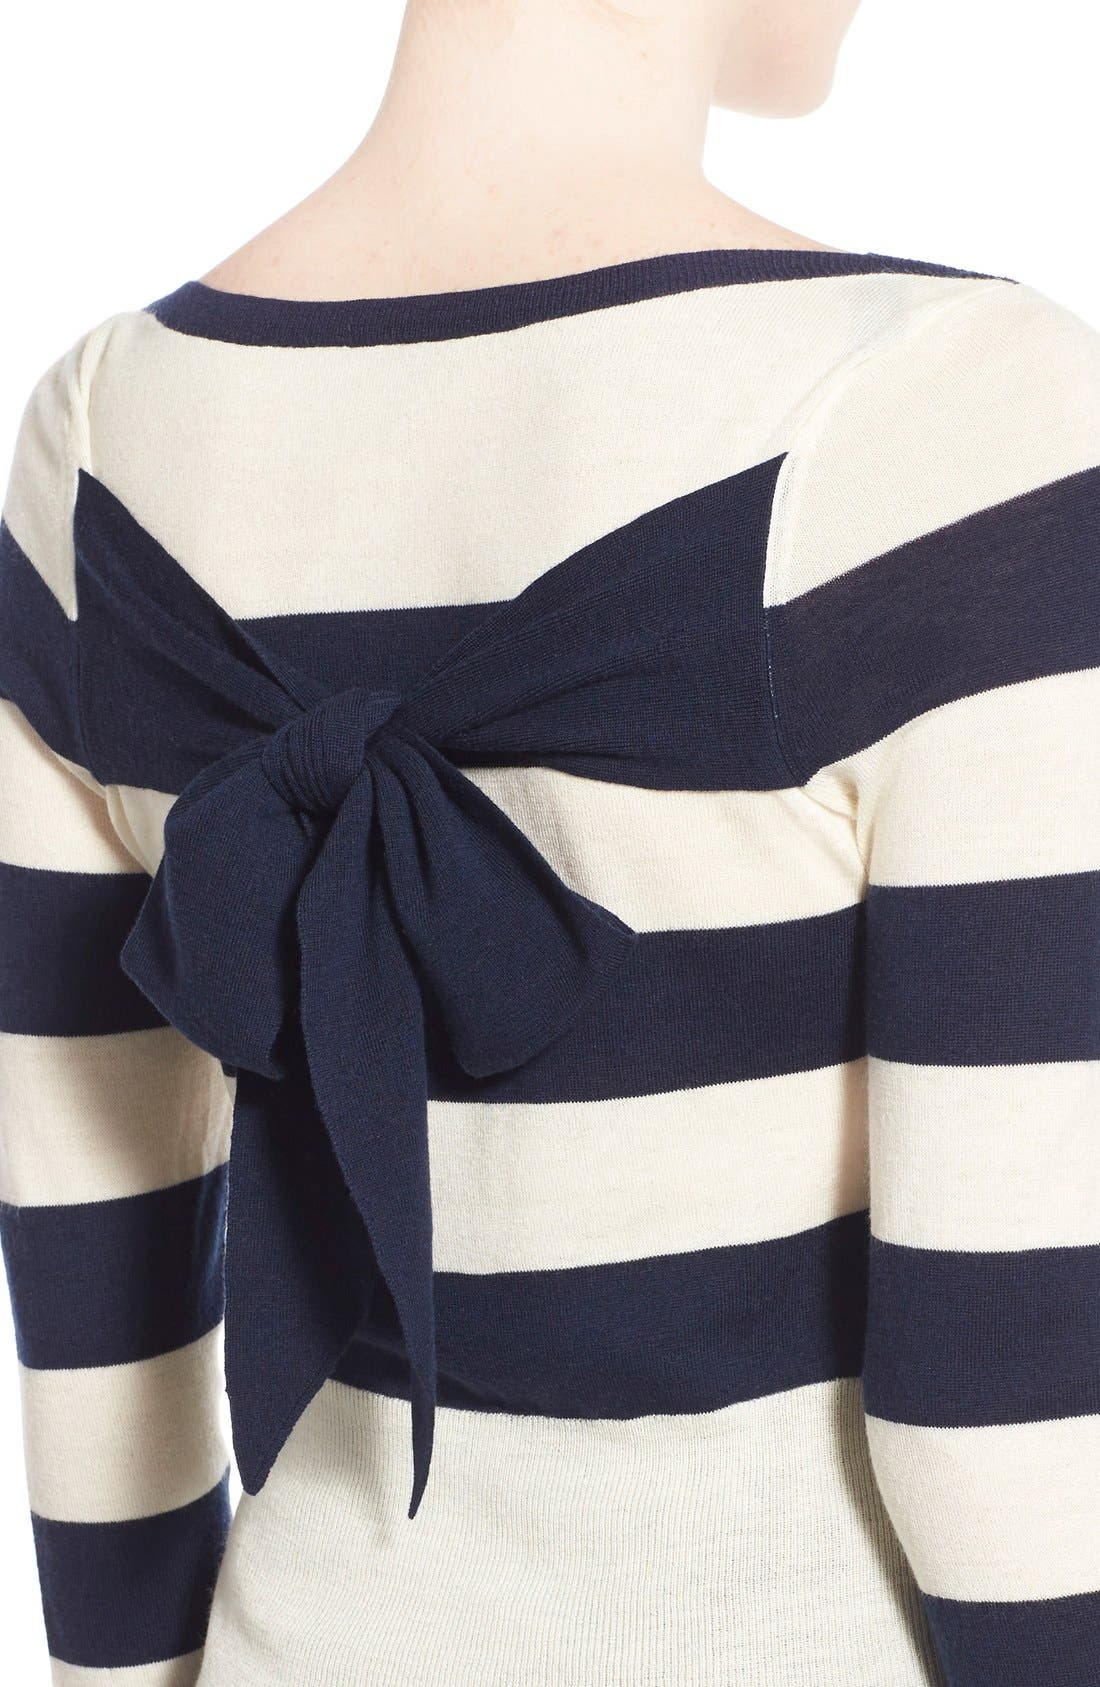 Stripe Wool & Cashmere Pullover,                             Alternate thumbnail 3, color,                             400